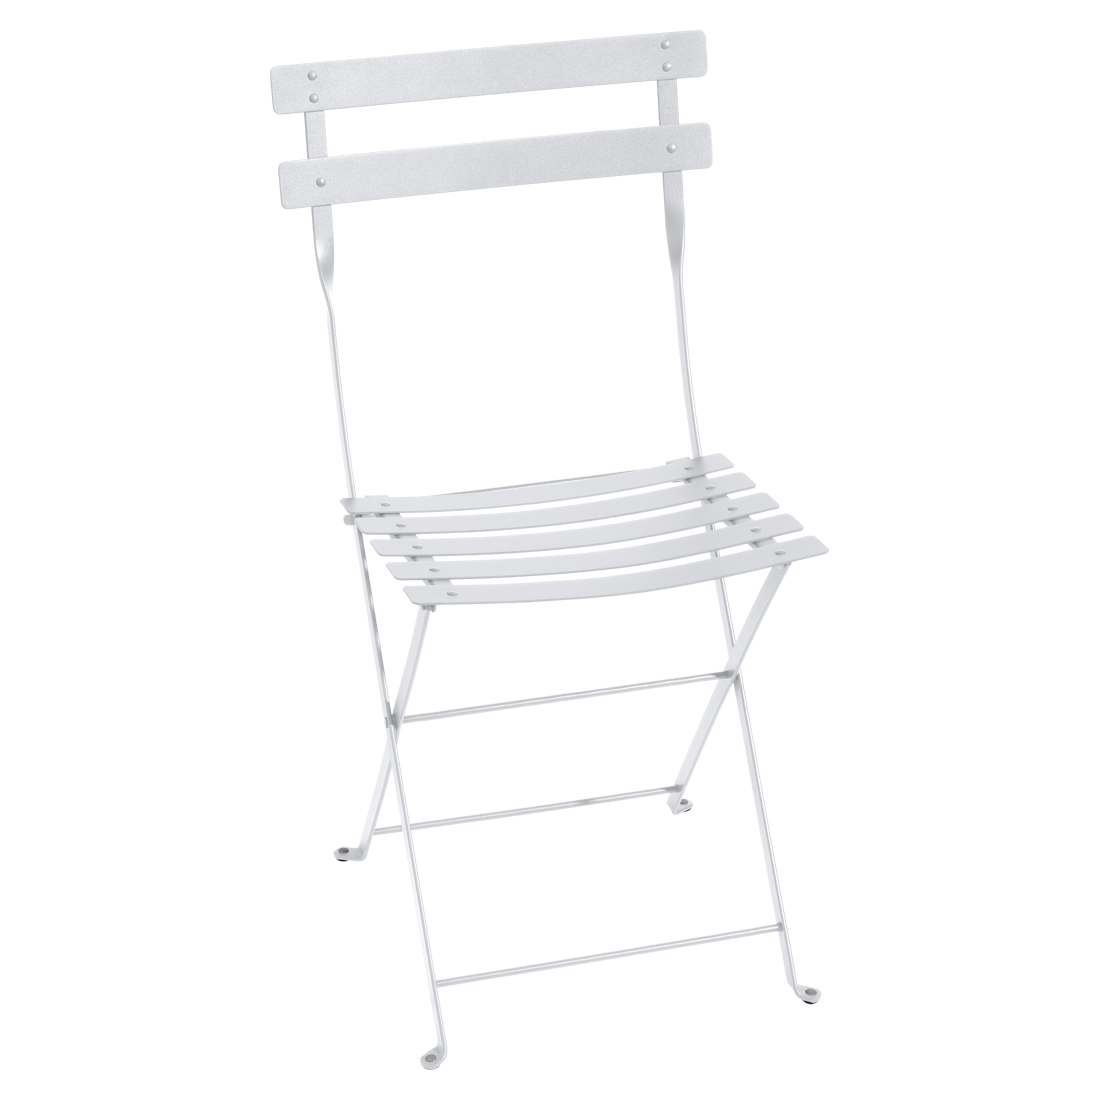 chaise bistro, chaise bistrot, chaise metal pliante, chaise fermob, chaise pliante, chaise de jardin, chaise pliante blanche